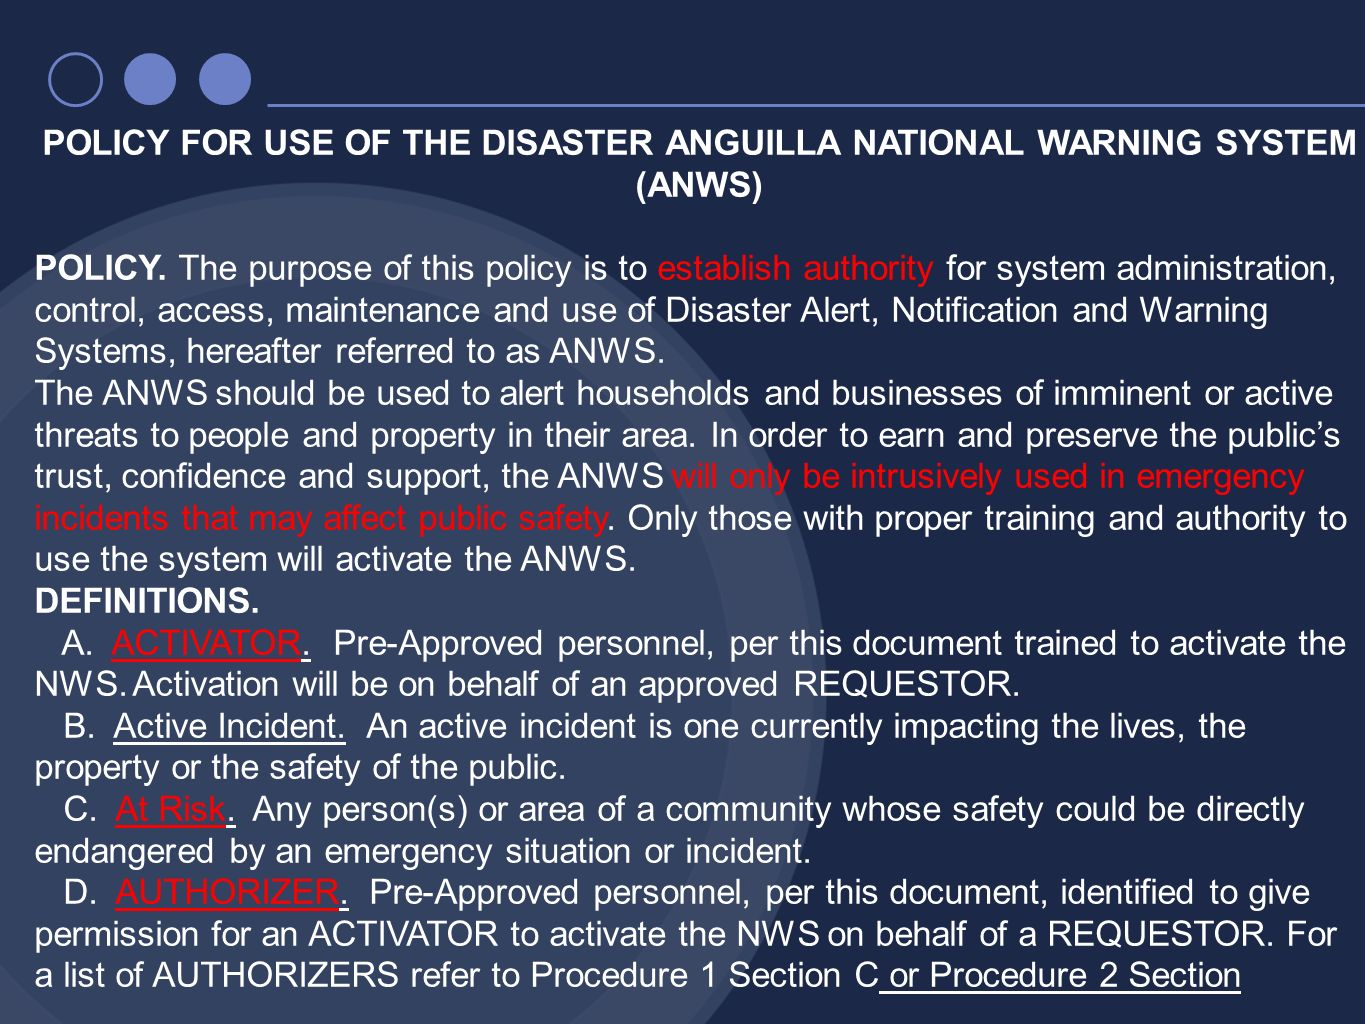 POLICY FOR USE OF THE DISASTER ANGUILLA NATIONAL WARNING SYSTEM (ANWS) POLICY. The purpose of this policy is to establish authority for system adminis